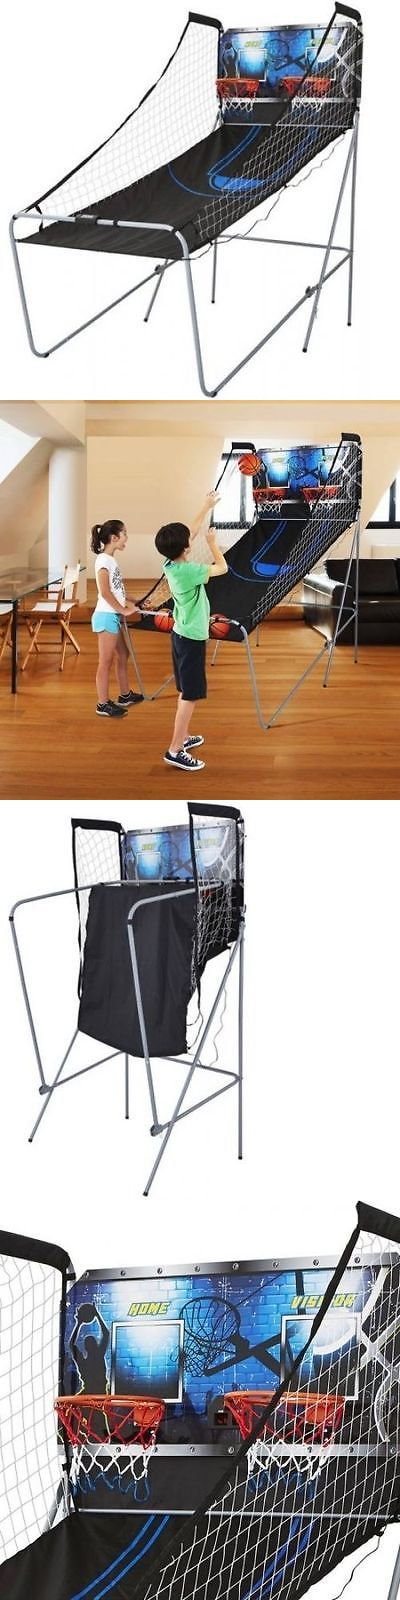 Other Indoor Games 36278: Arcade Basketball Game 2-Player Electronic Sports Shot Hoops With 8 Game Options BUY IT NOW ONLY: $69.99